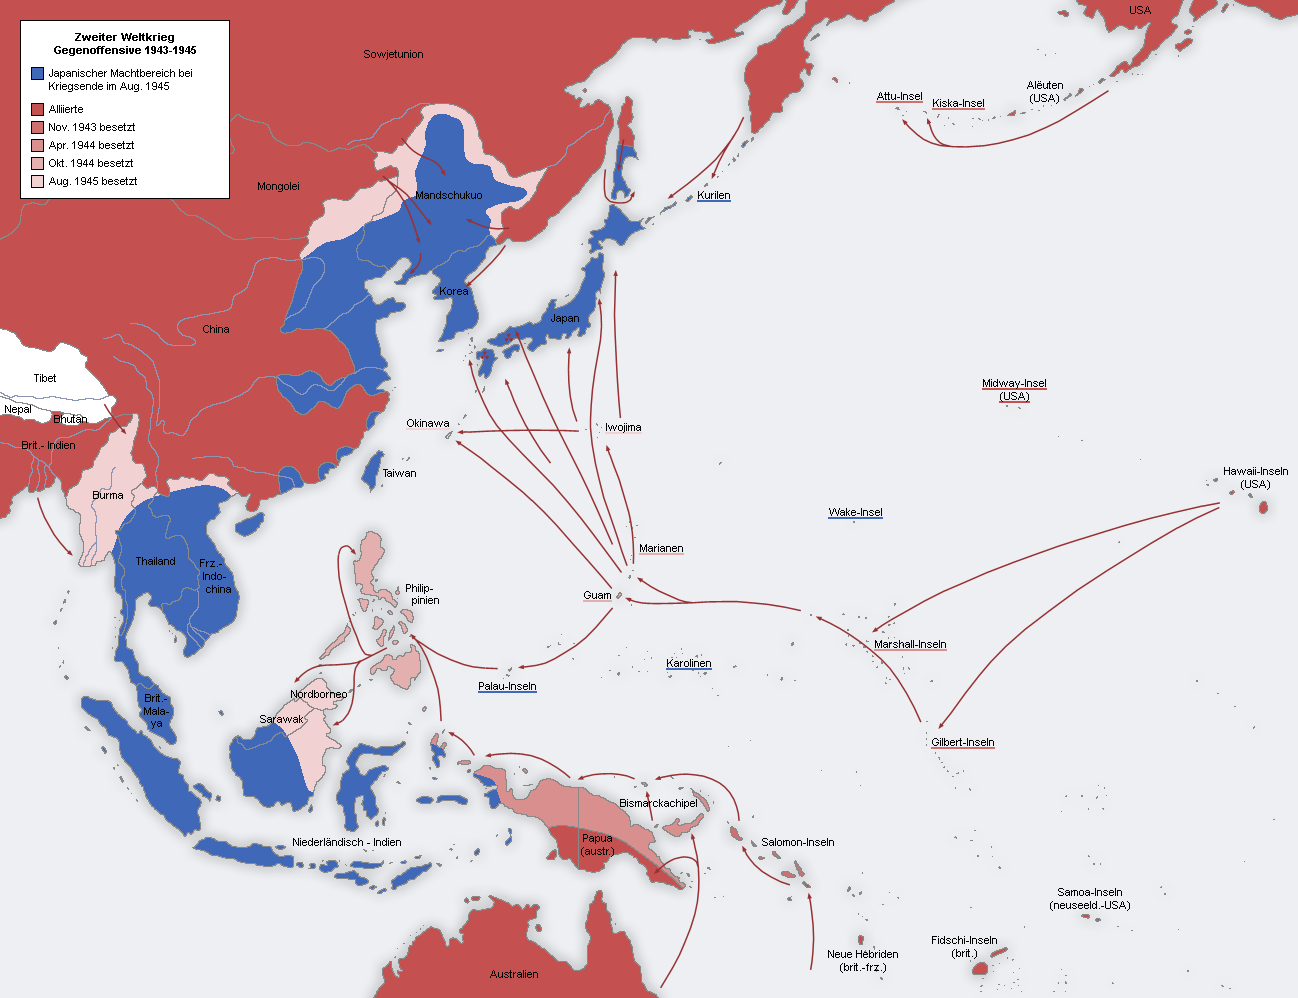 Filesecond world war asia 1943 1945 map deg wikimedia commons filesecond world war asia 1943 1945 map deg gumiabroncs Image collections